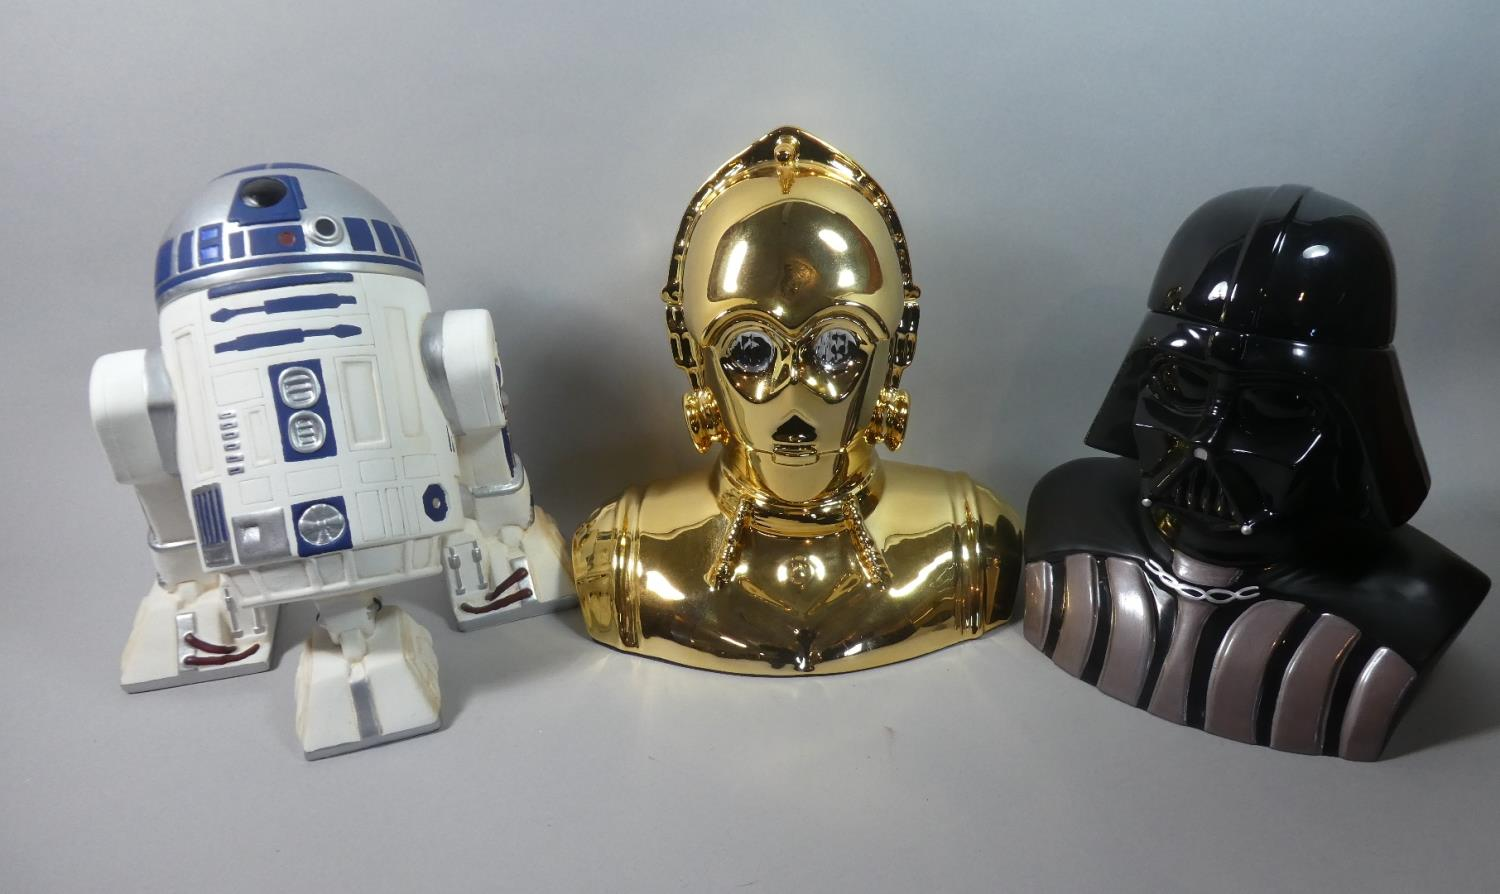 A Collection of Three Star Wars Novelty Biscuit Barrels